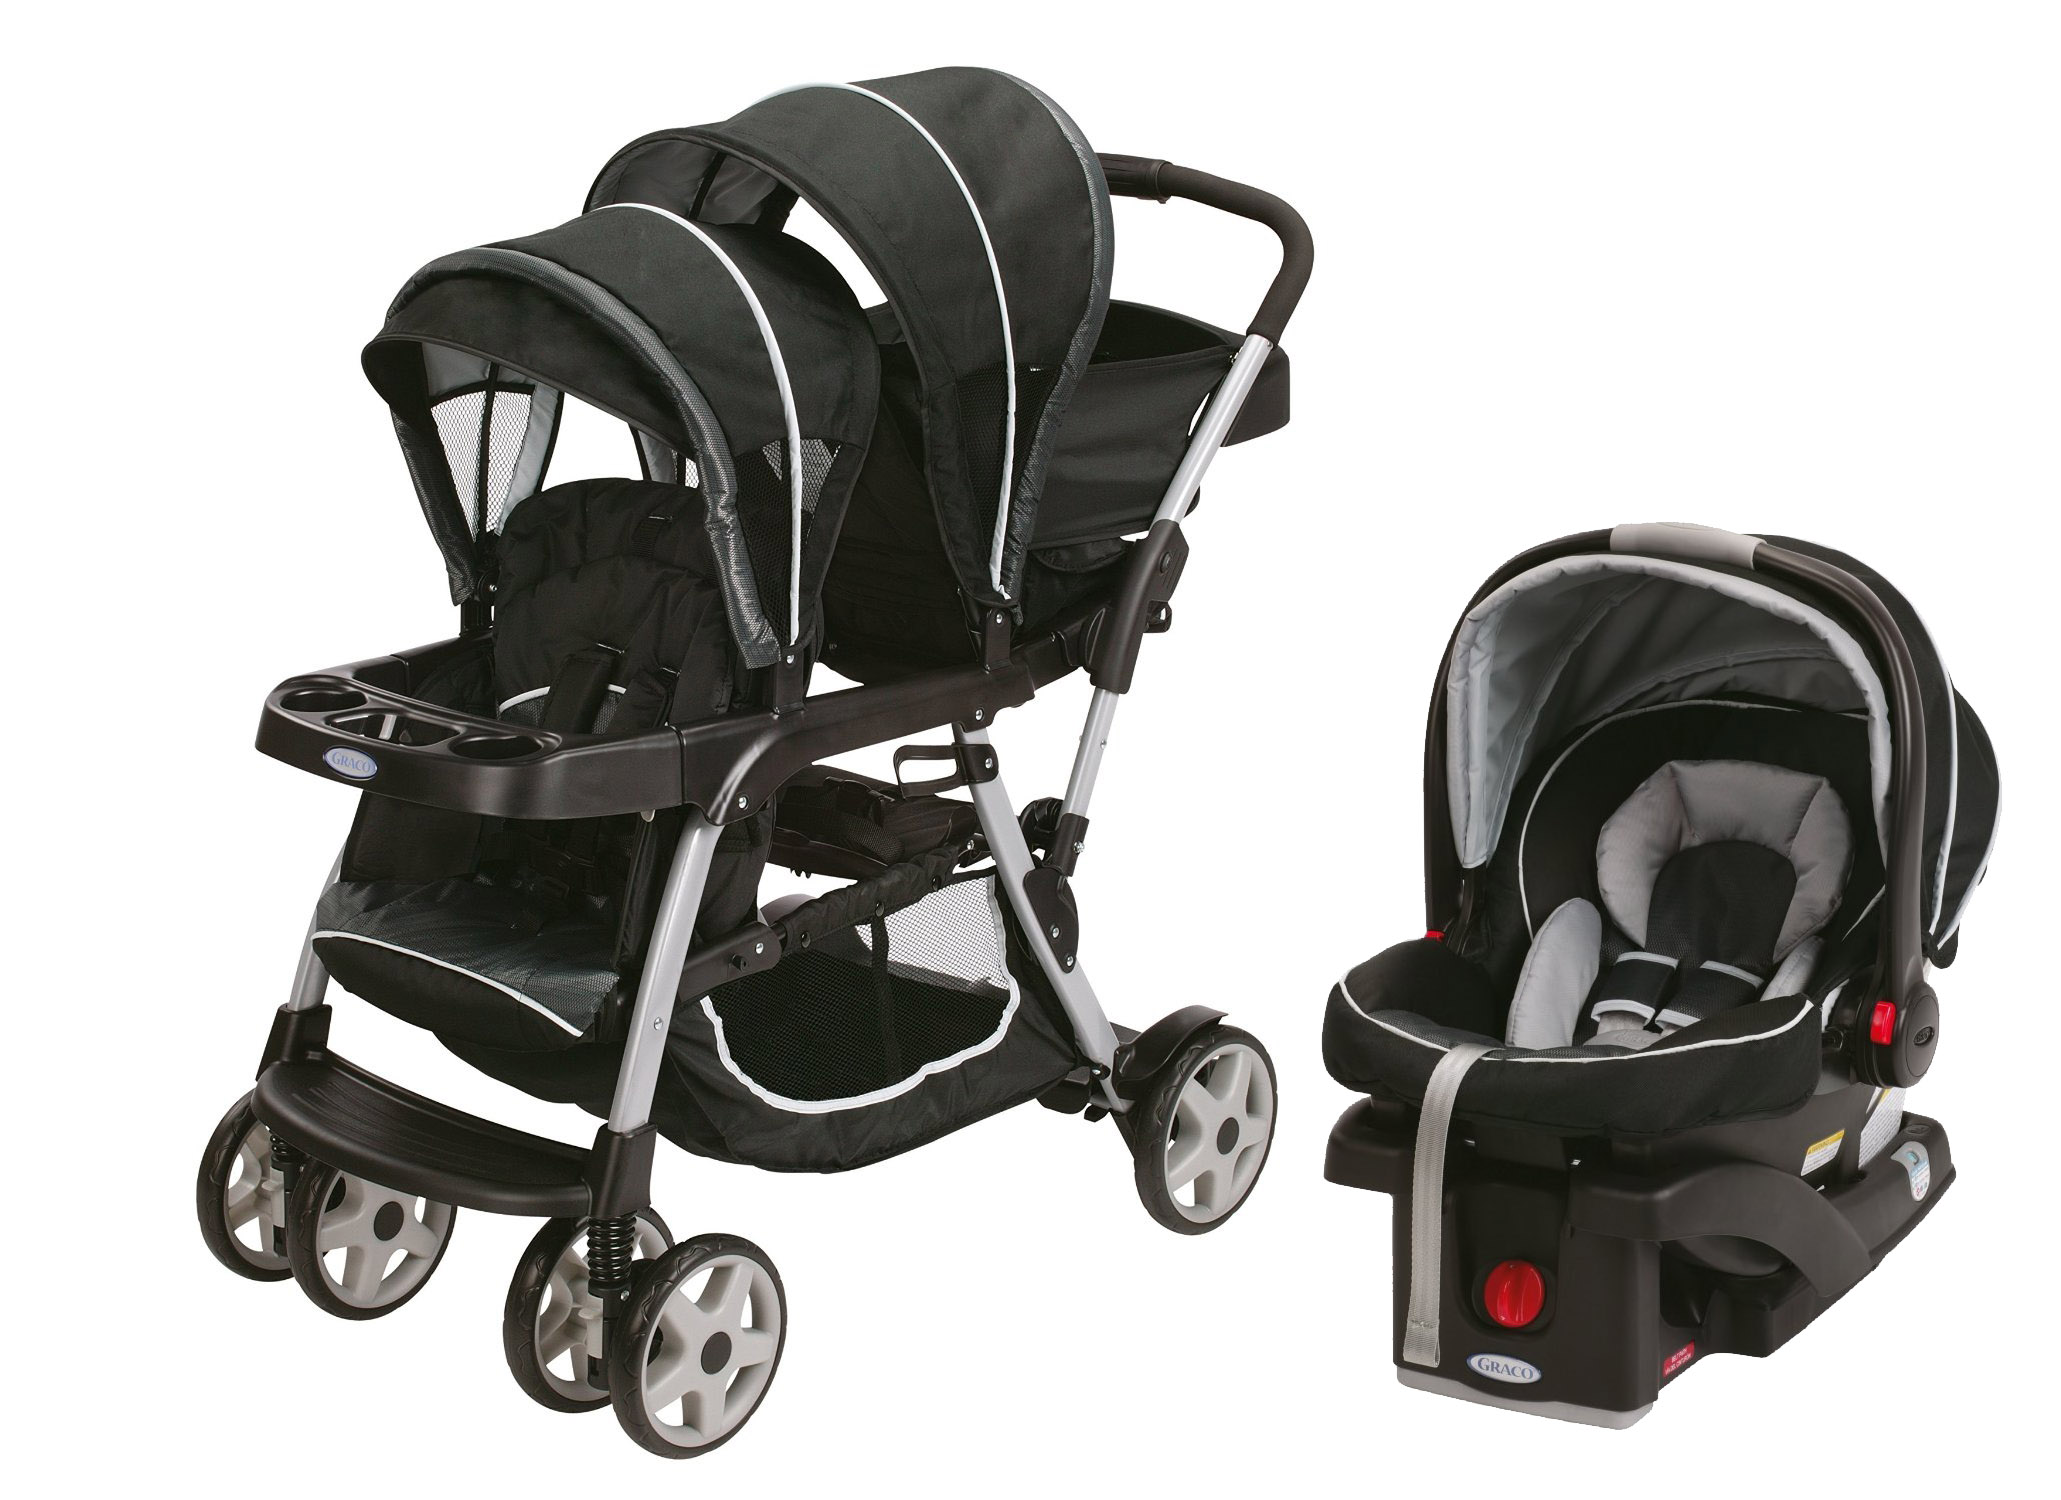 Graco Ready2Grow LX Duo Double Baby Stroller + Car Seat Travel System, Gotham by Graco